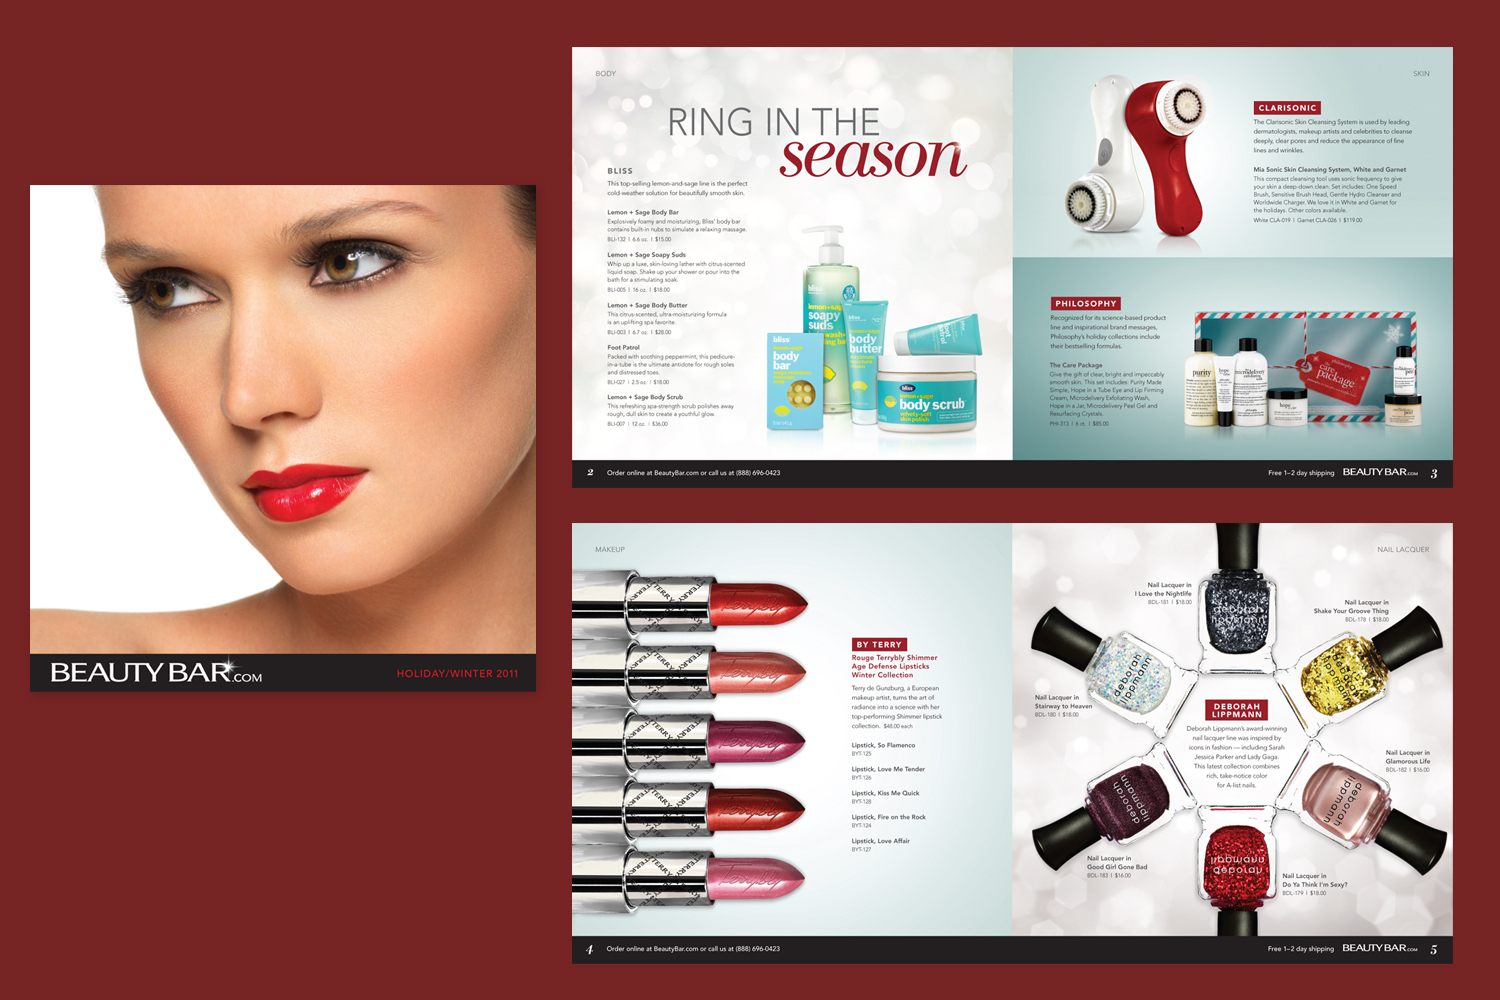 Holiday 2011 BeautyBar.com Catalog